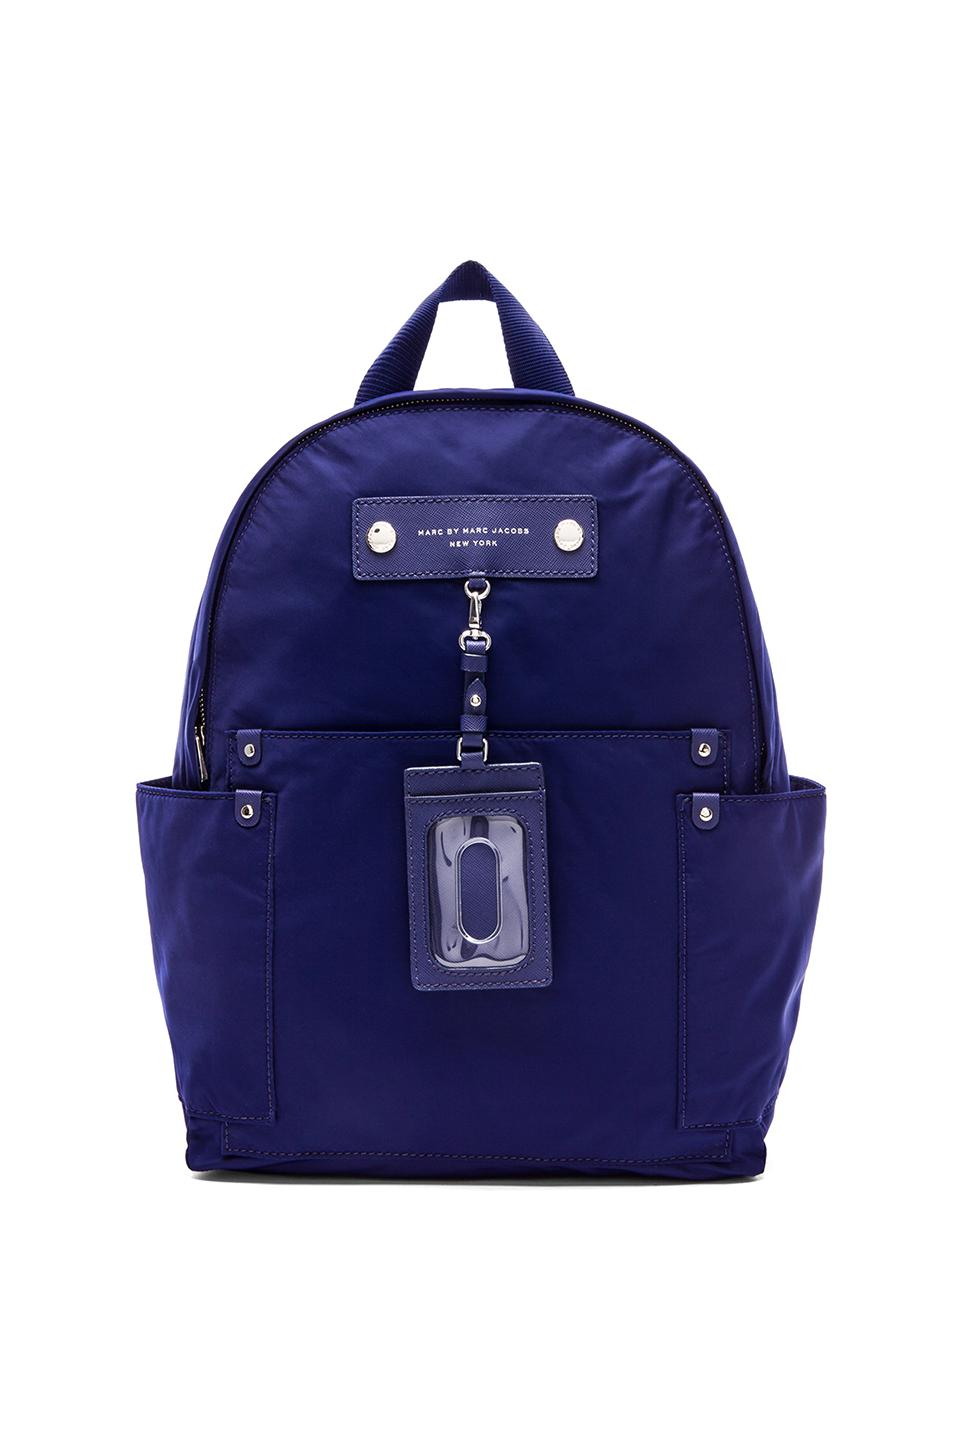 Marc by Marc Jacobs Preppy Nylon Backpack in Deep Ultraviolet